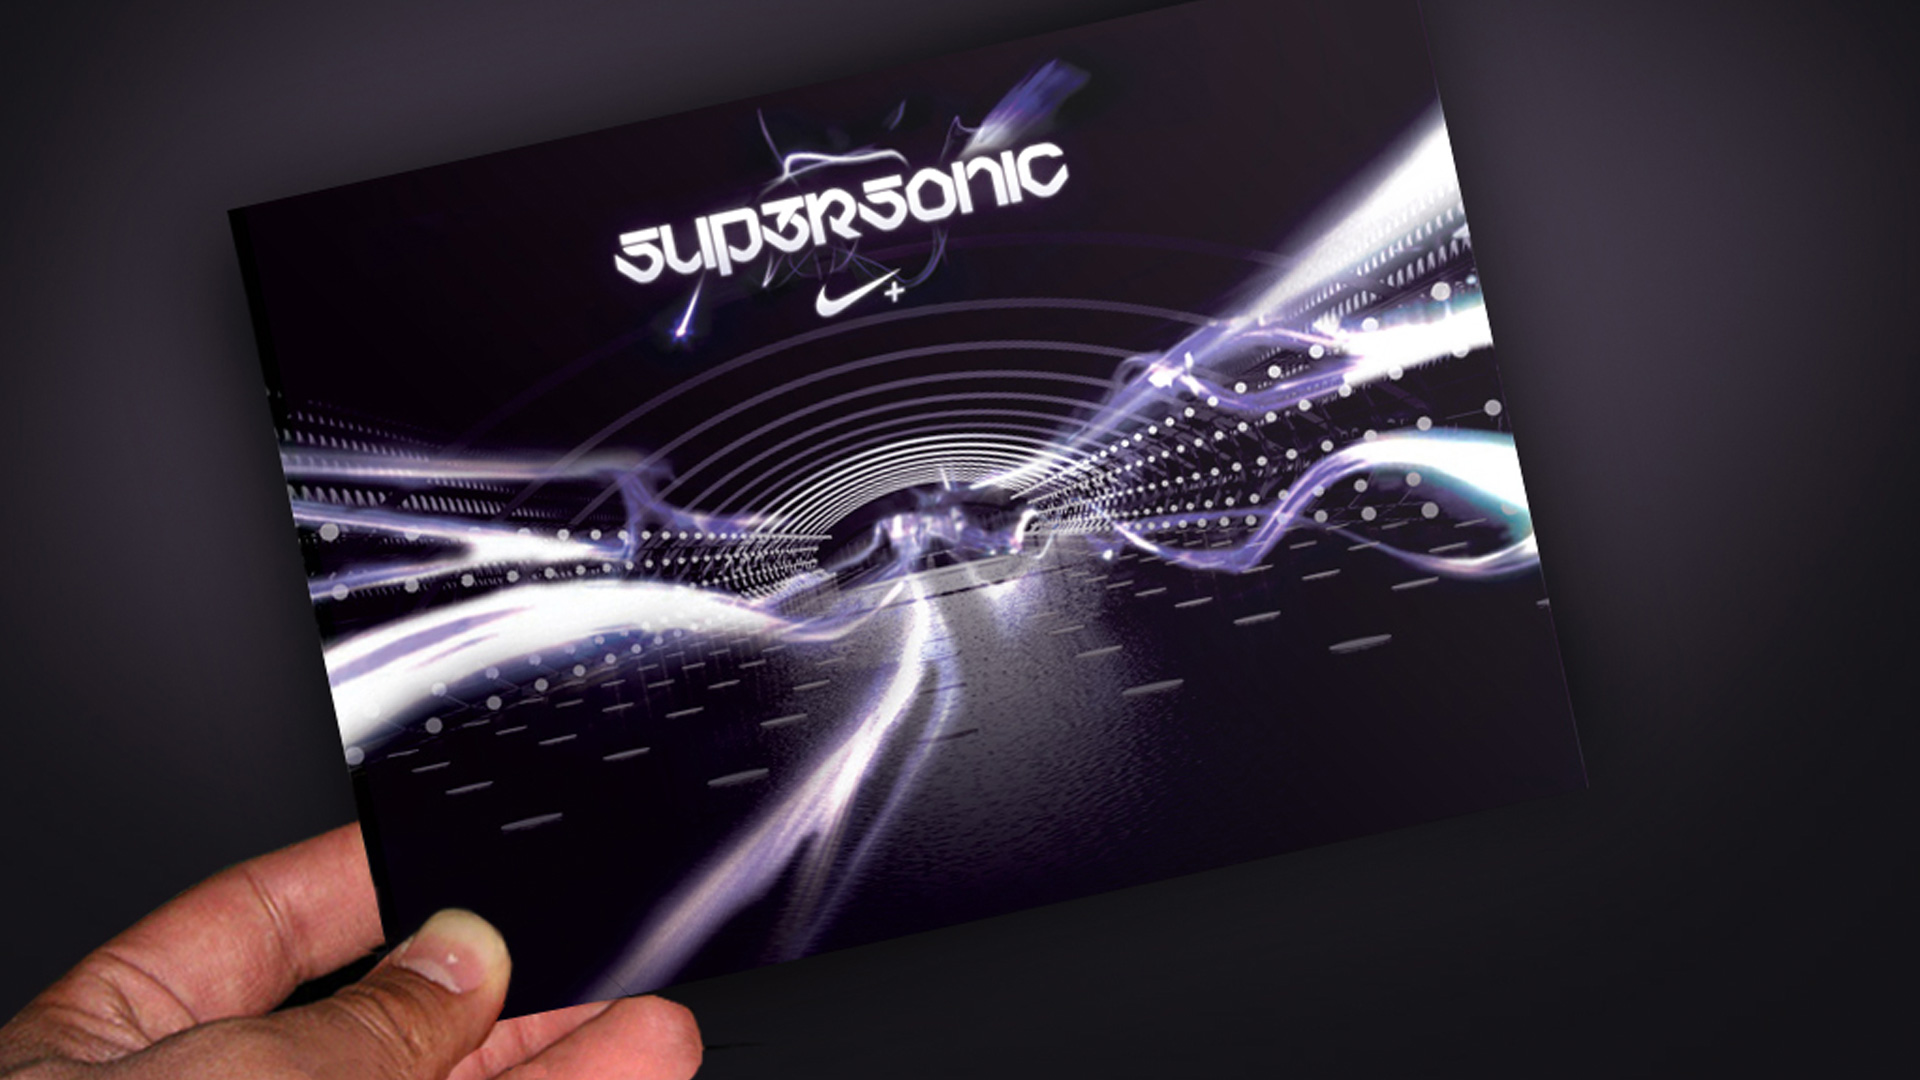 Supersonic_Hero_Shot_24